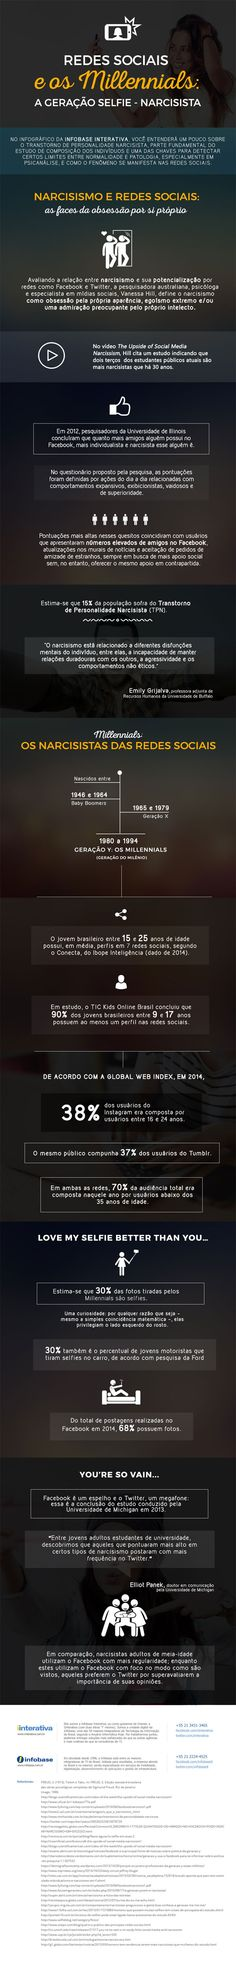 79 best persona images on pinterest advertising persona and behavior narcisismo e a gerao millennial fandeluxe Image collections